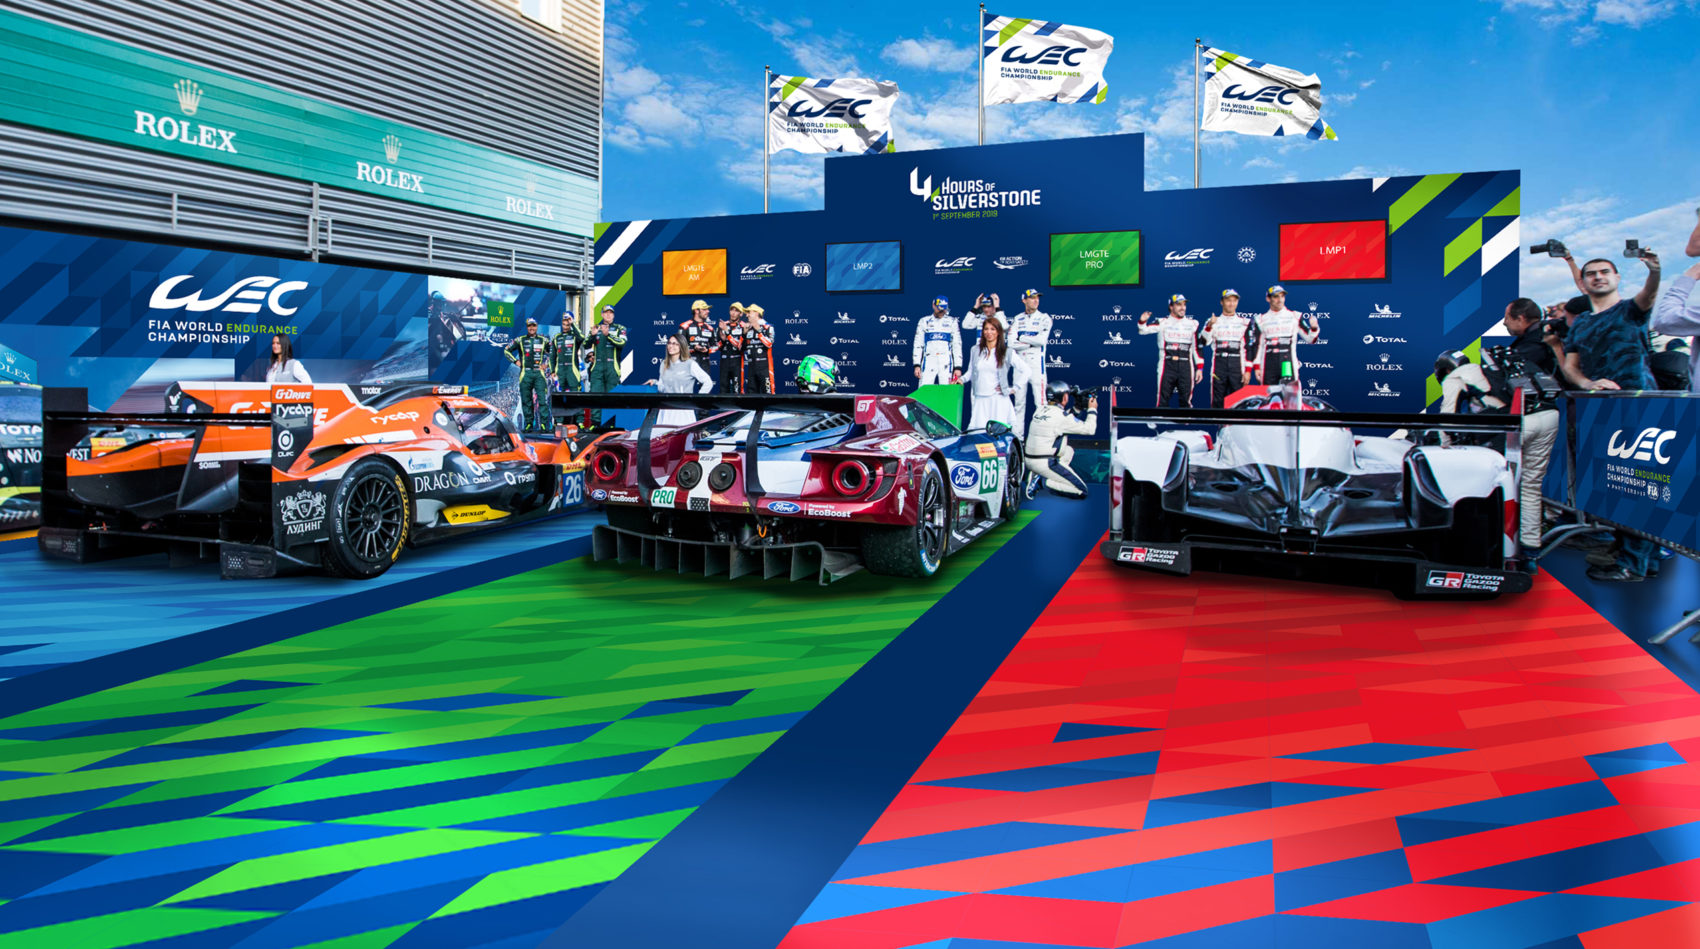 Projet_Project_WEC_FIA_world_endurance_championship_habillage_branding